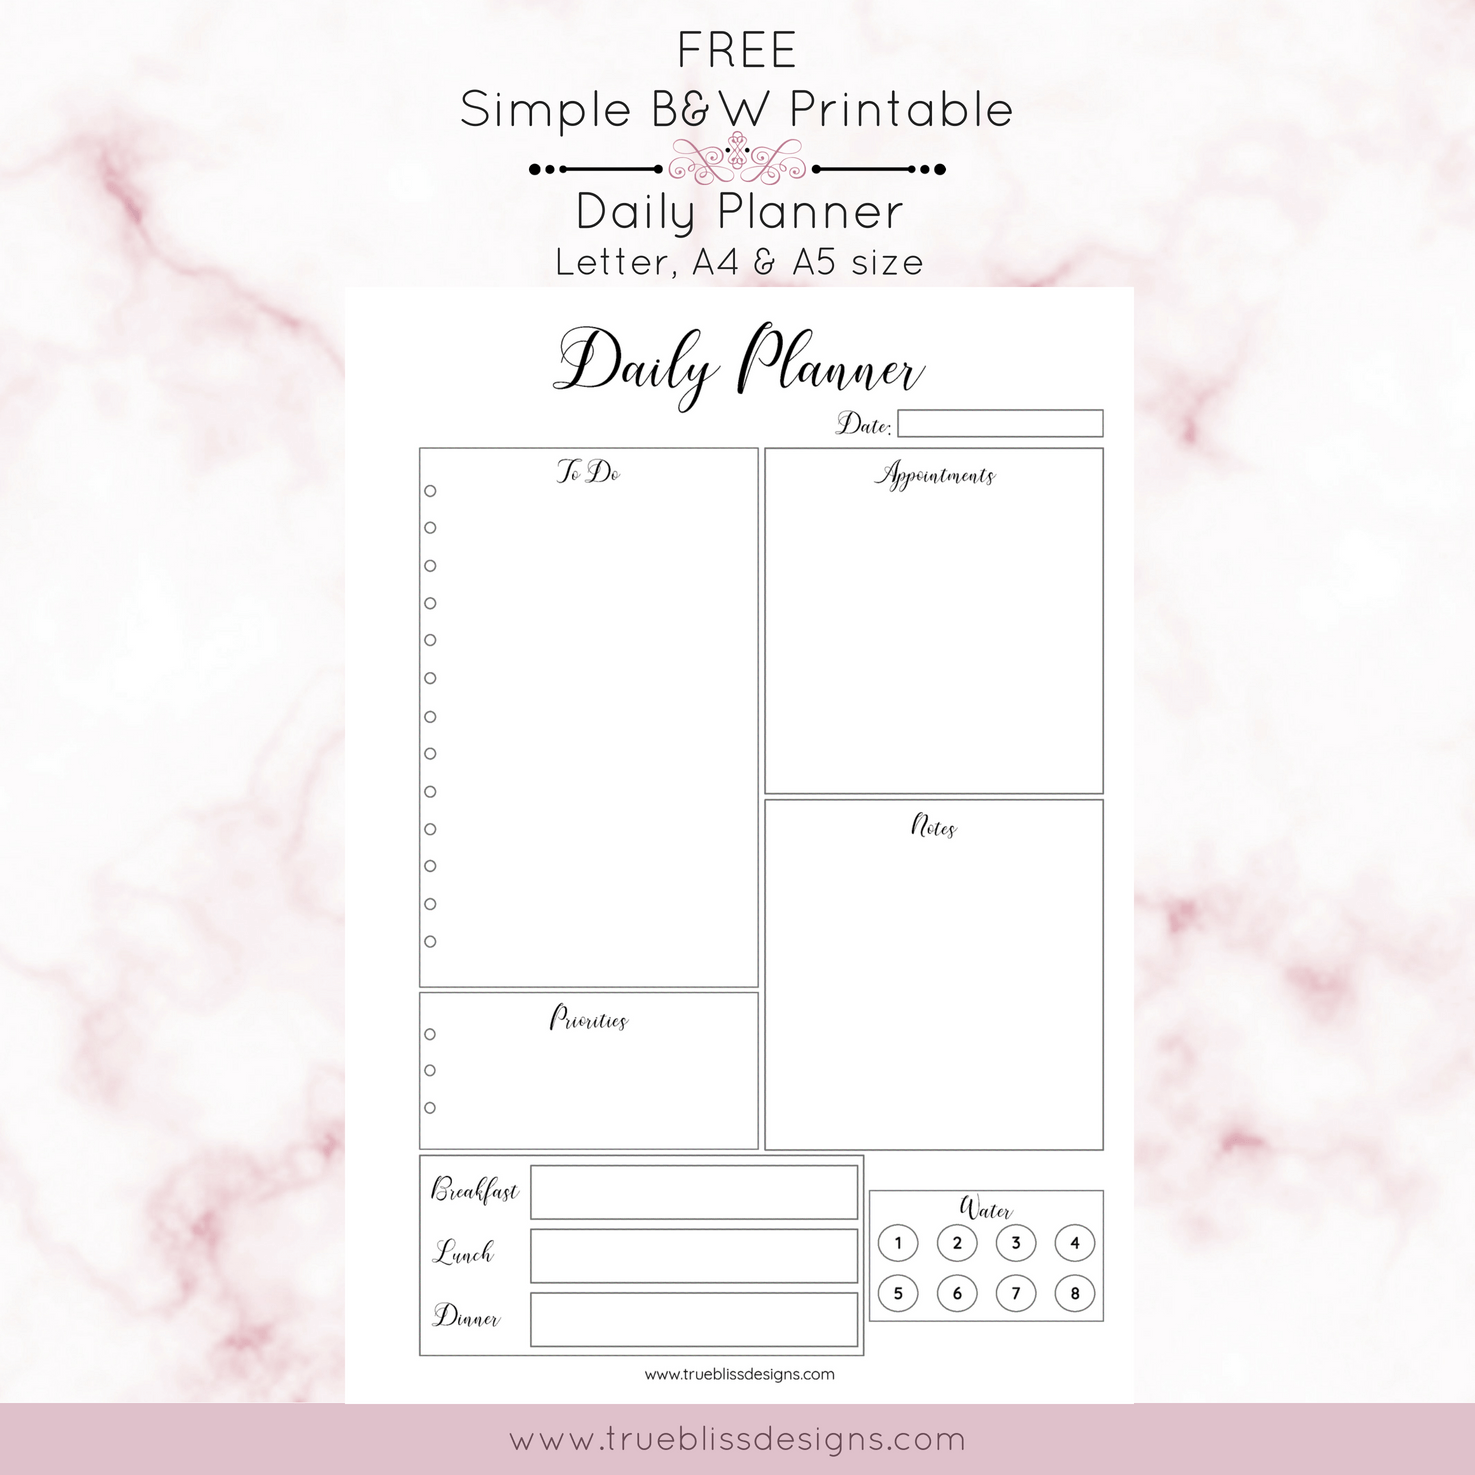 photograph regarding Free A5 Planner Printables identified as Straightforward Black and White Printable Planners - Accurate Bliss Layouts